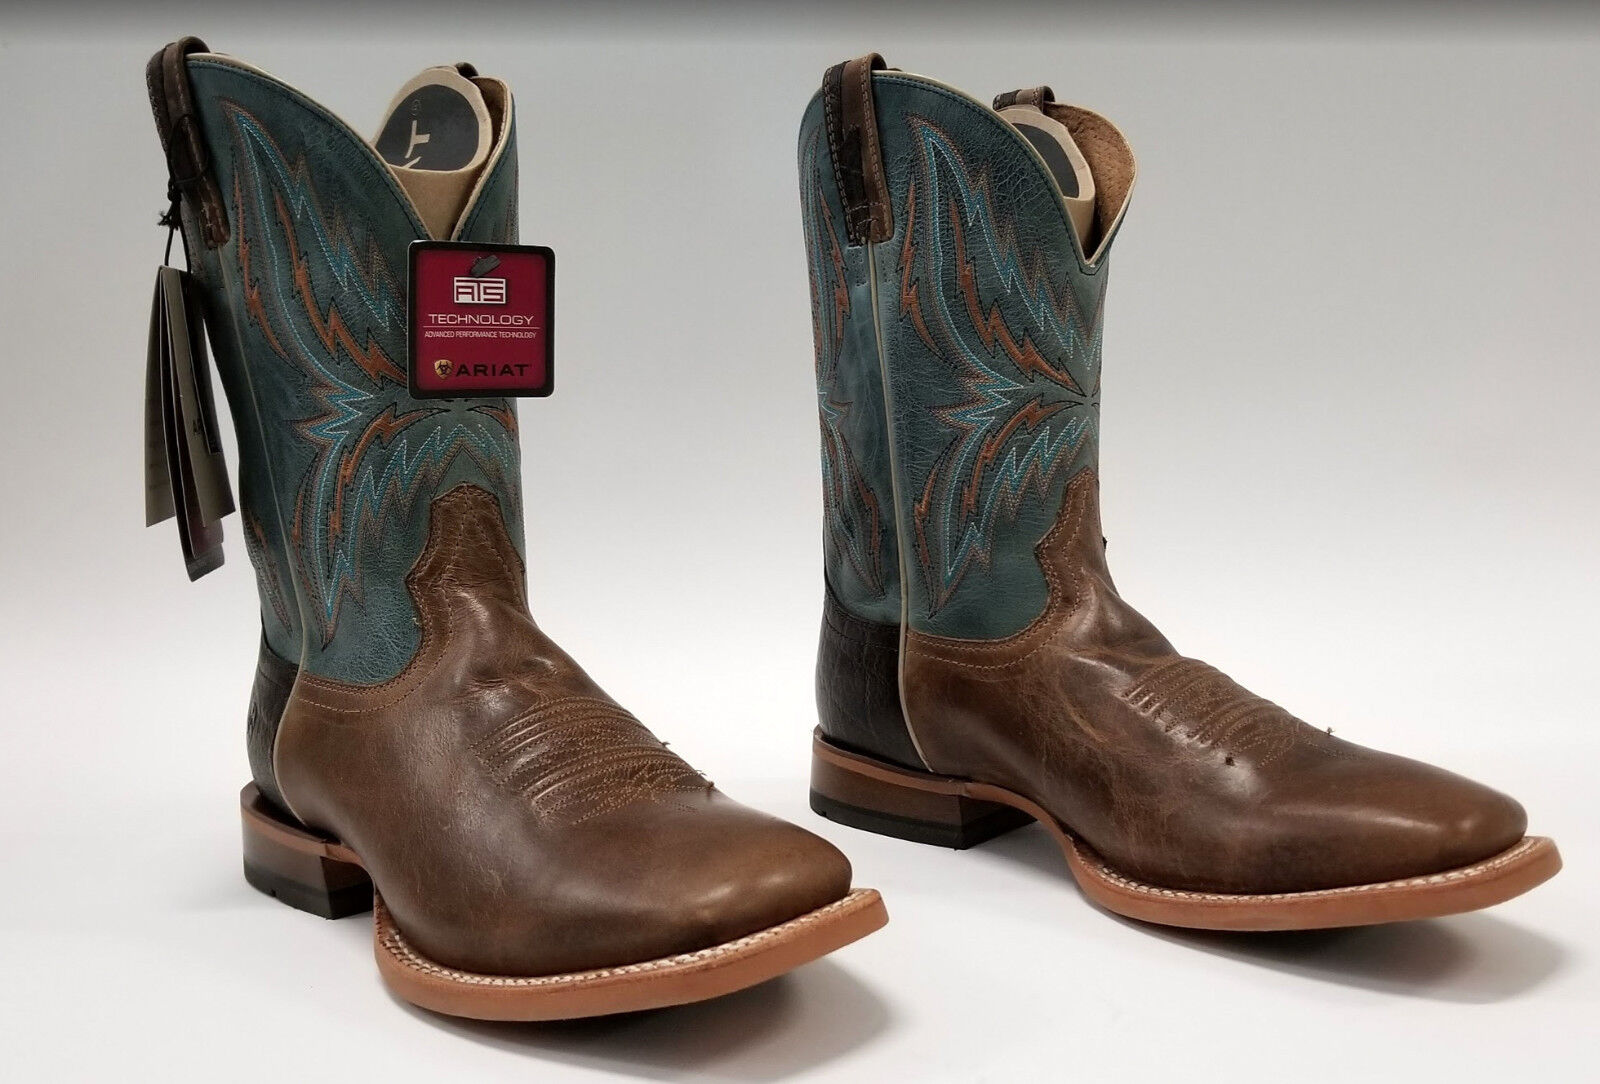 Ariat Men's Arena Rebound Work Boot, Dusted Wheat, 11.5 D US